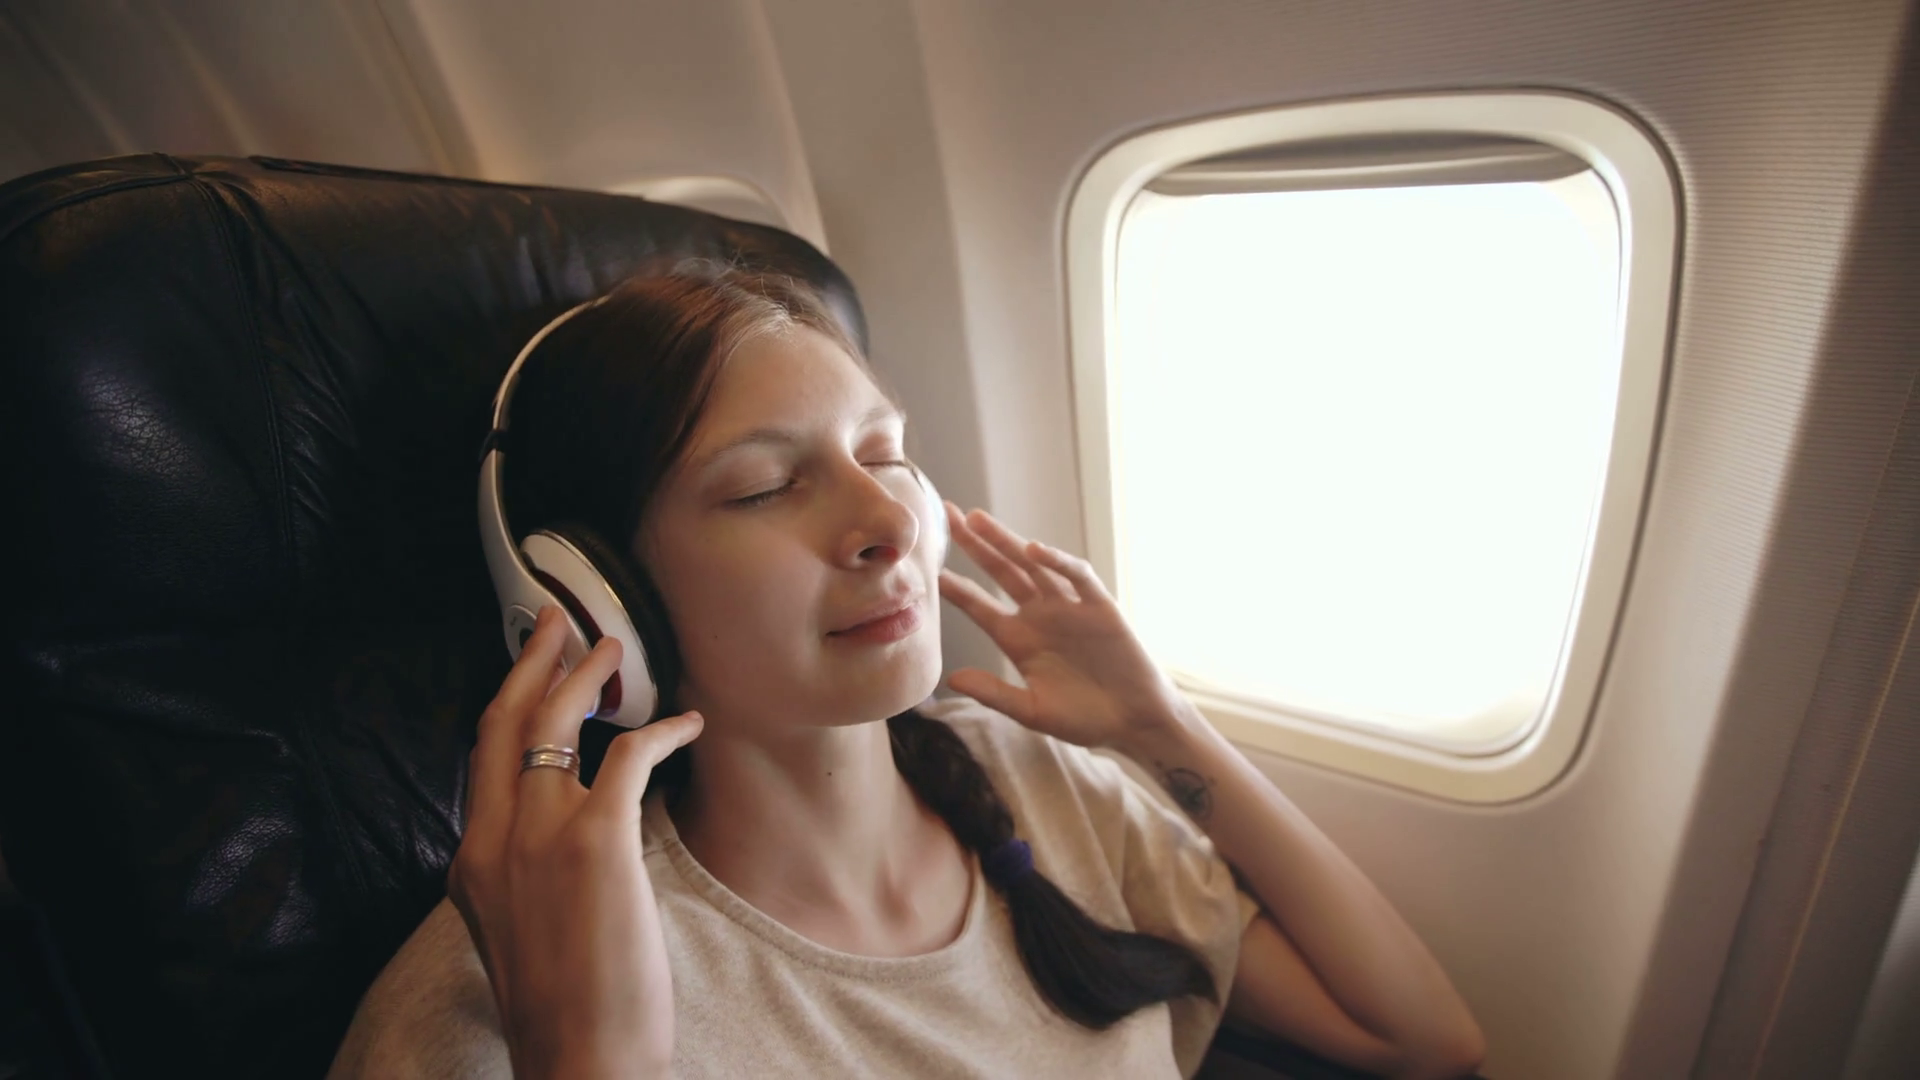 videoblocks-young-woman-in-wireless-headphones-listening-to-music-and-smiling-during-fly-in-airplane_sgqpxsfhe_thumbnail-full01